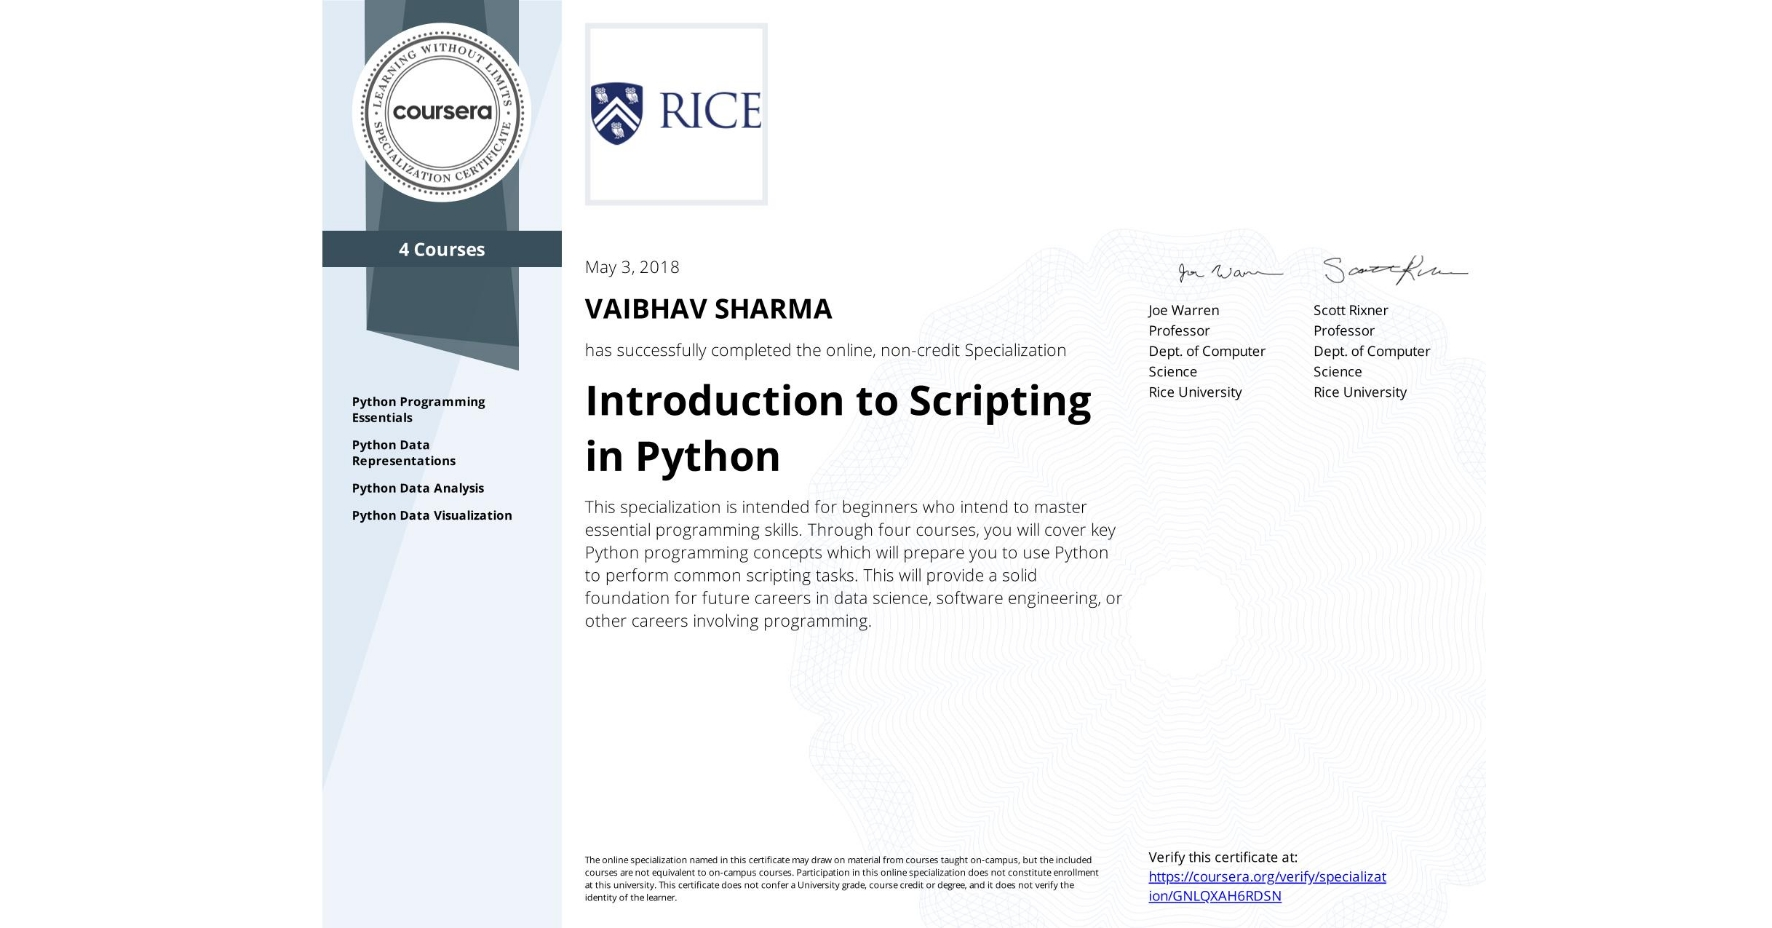 View certificate for VAIBHAV SHARMA, Introduction to Scripting in Python, offered through Coursera. This specialization is intended for beginners who intend to master essential programming skills. Through four courses, you will cover key Python programming concepts which will prepare you to use Python to perform common scripting tasks. This will provide a solid foundation for future careers in data science, software engineering, or other careers involving programming.